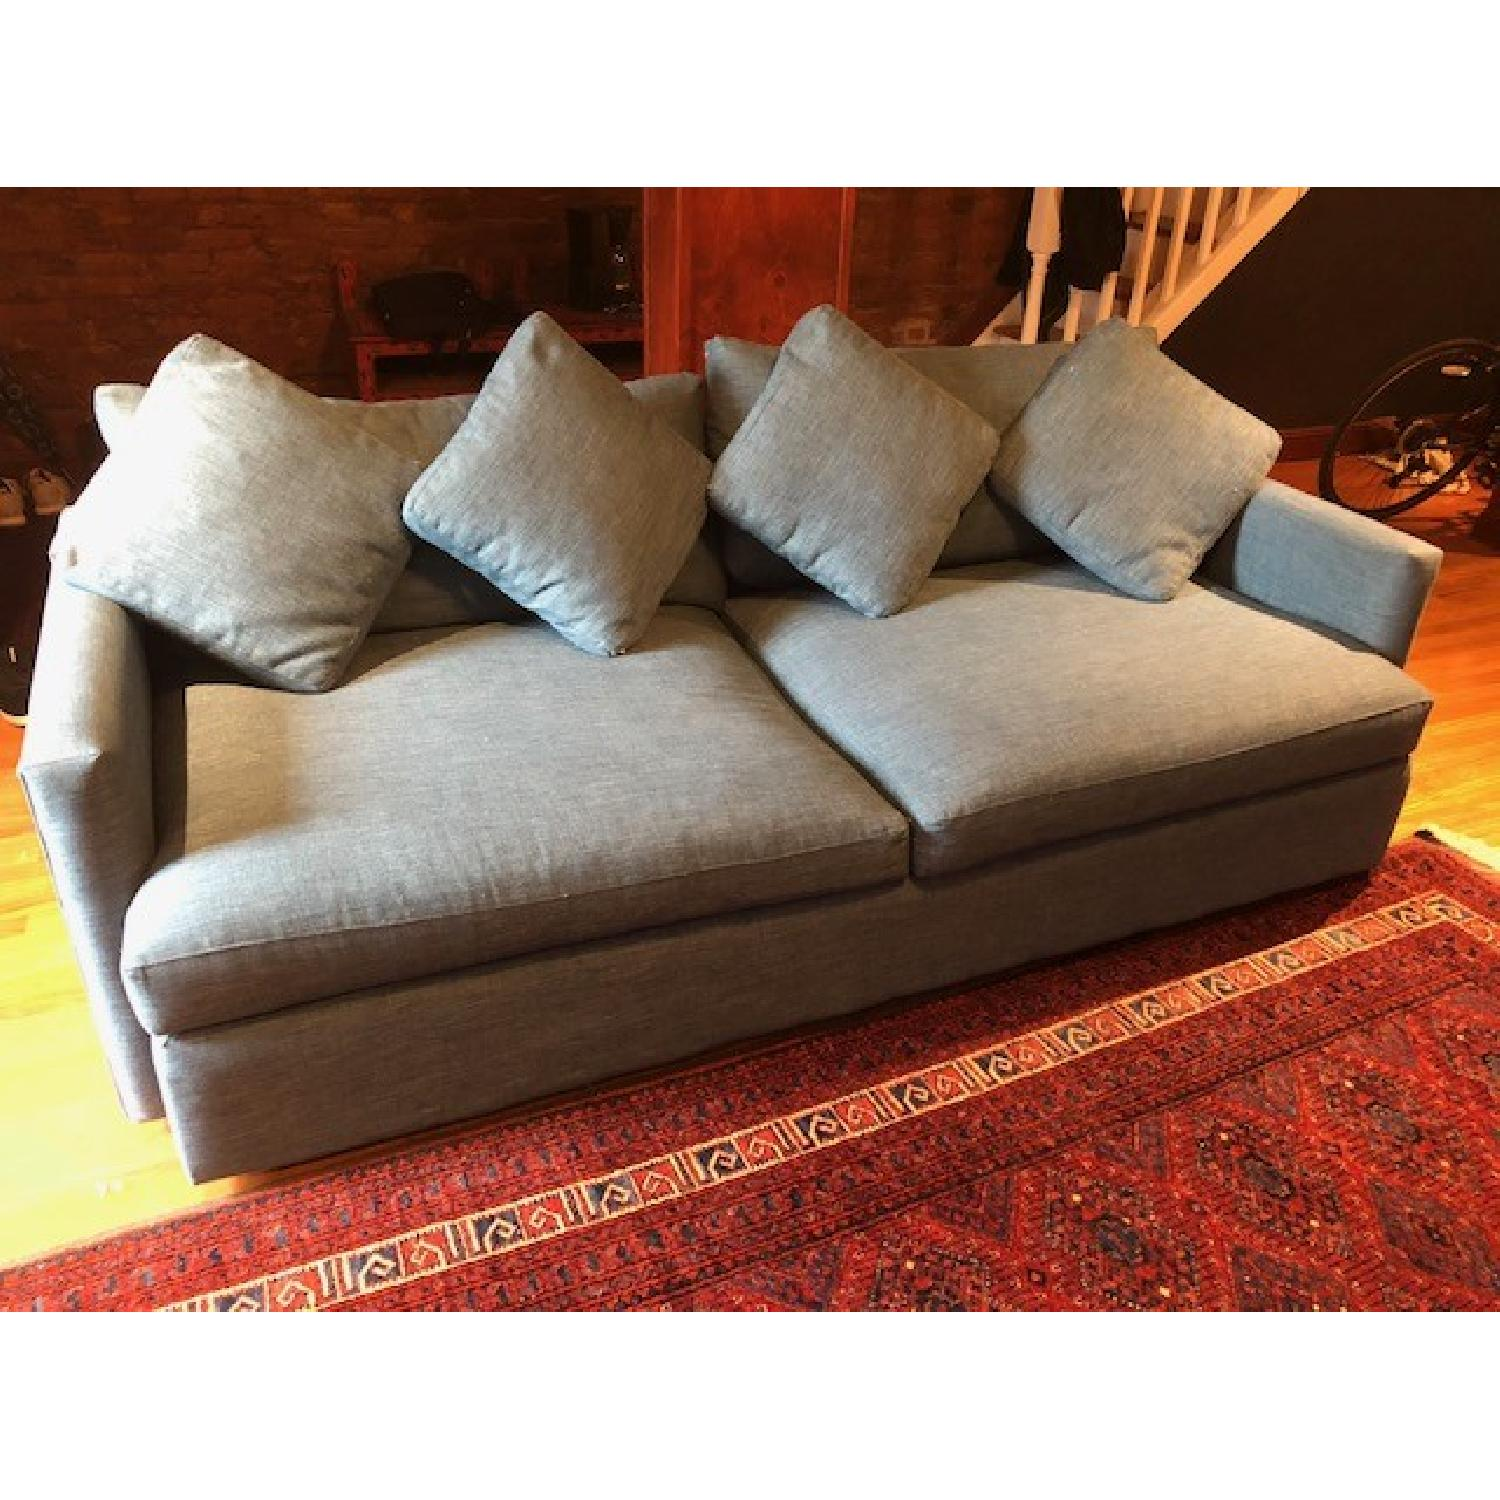 Crate & Barrel Lounge II Apartment Sofa & Ottoman-12